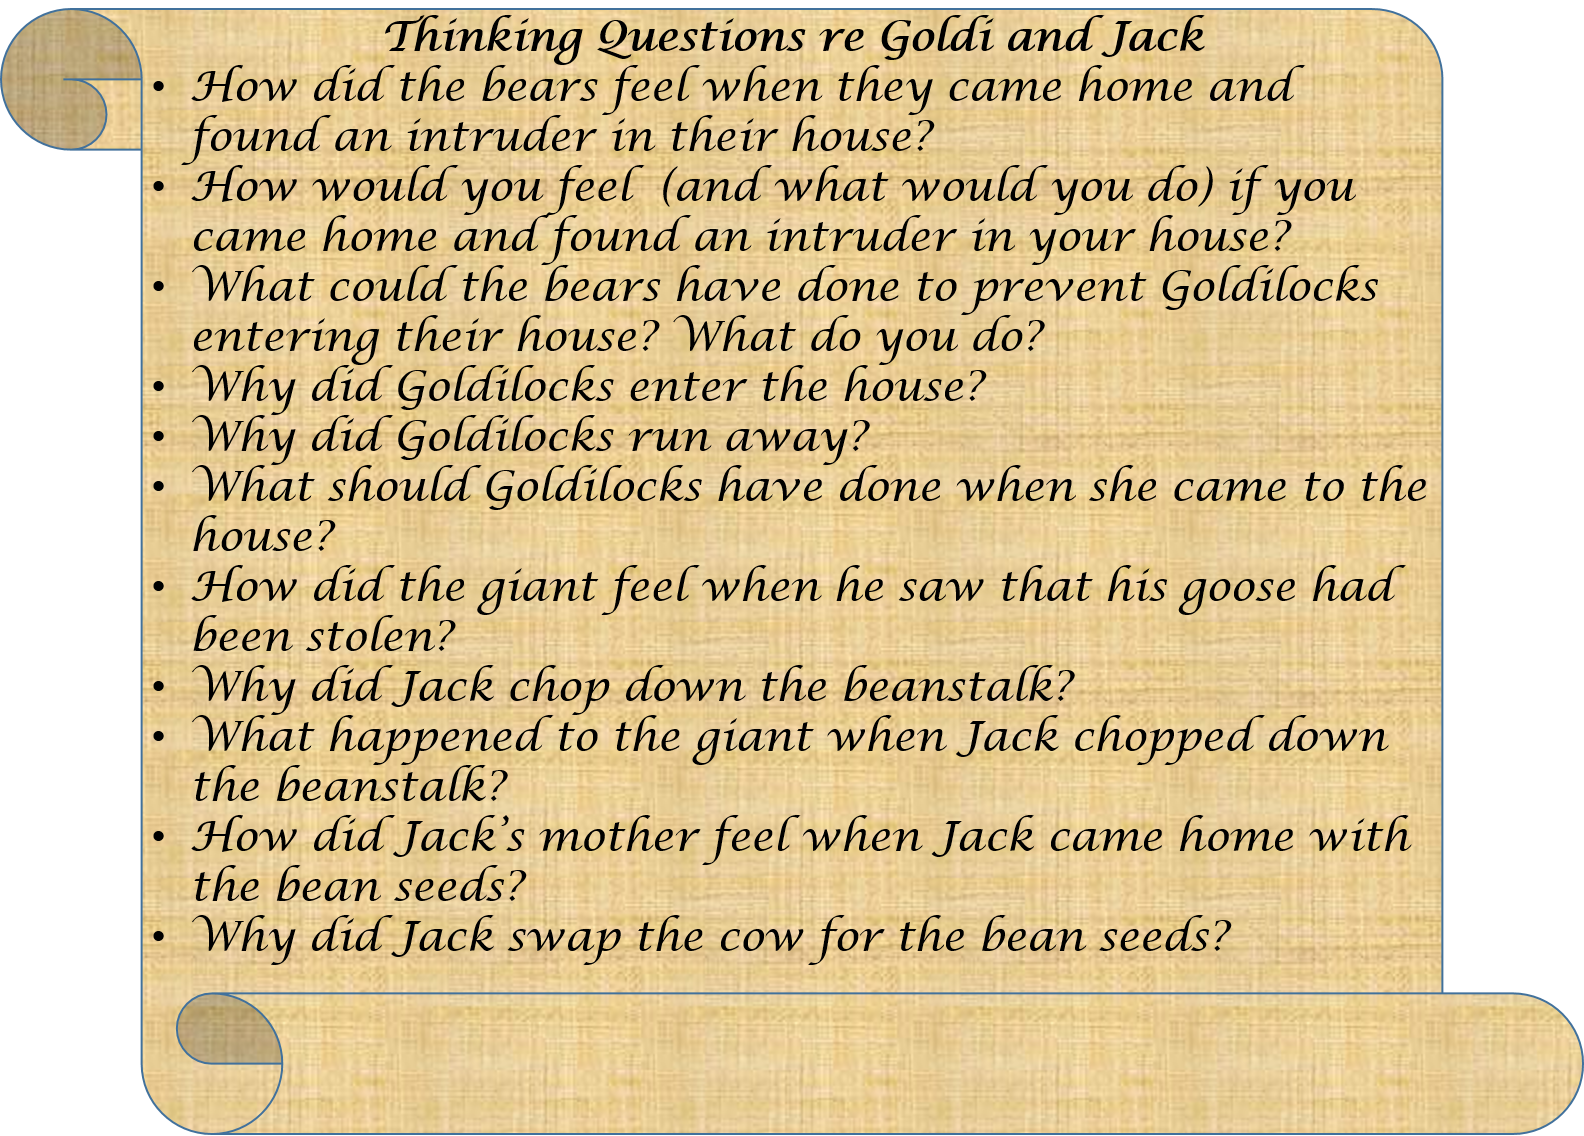 Questions re Goldi and Jack